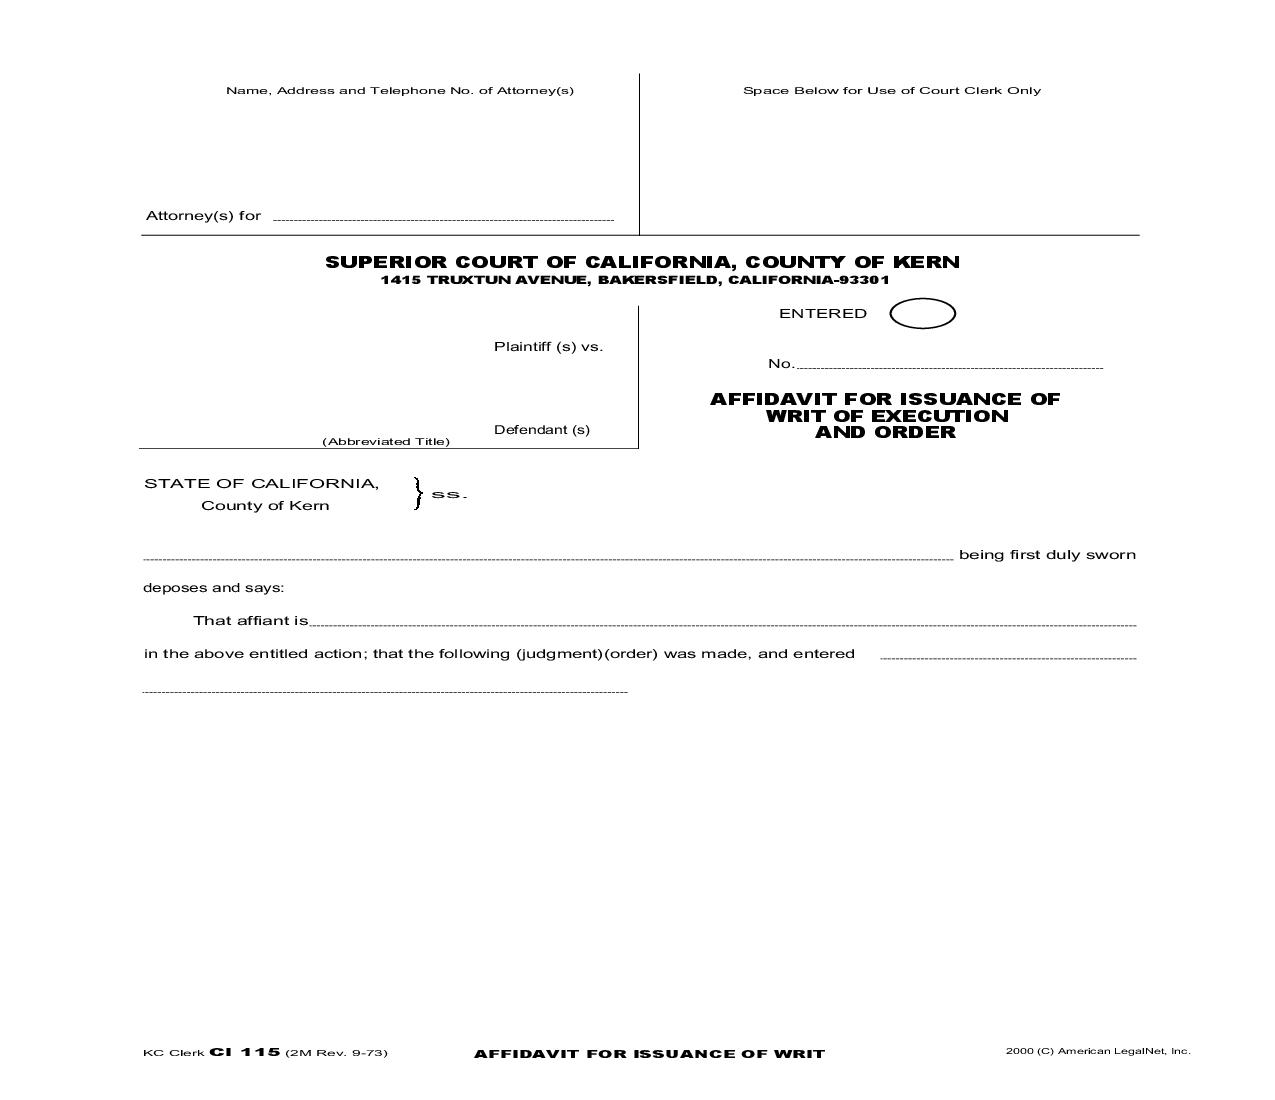 Affidavit For Issuance Of Writ Of Execution And Order {Ci 115} | Pdf Fpdf Doc Docx | California